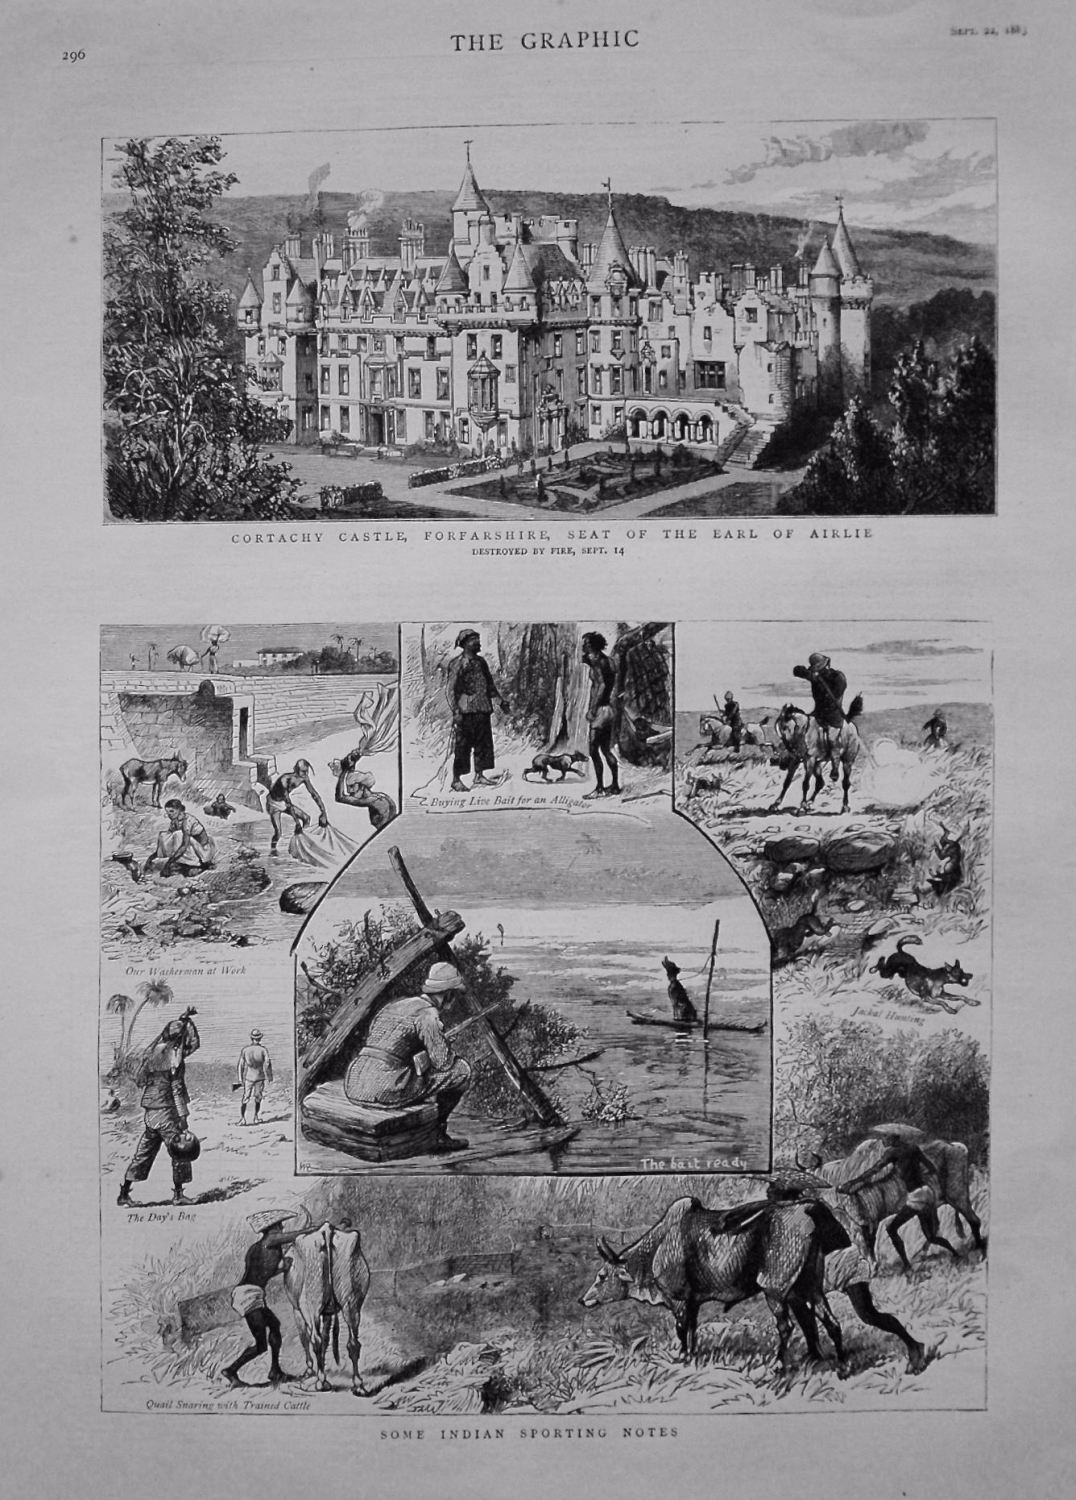 Cortachy Castle, Forfarshire, Seat of the Earl of Airlie. Destroyed by Fire